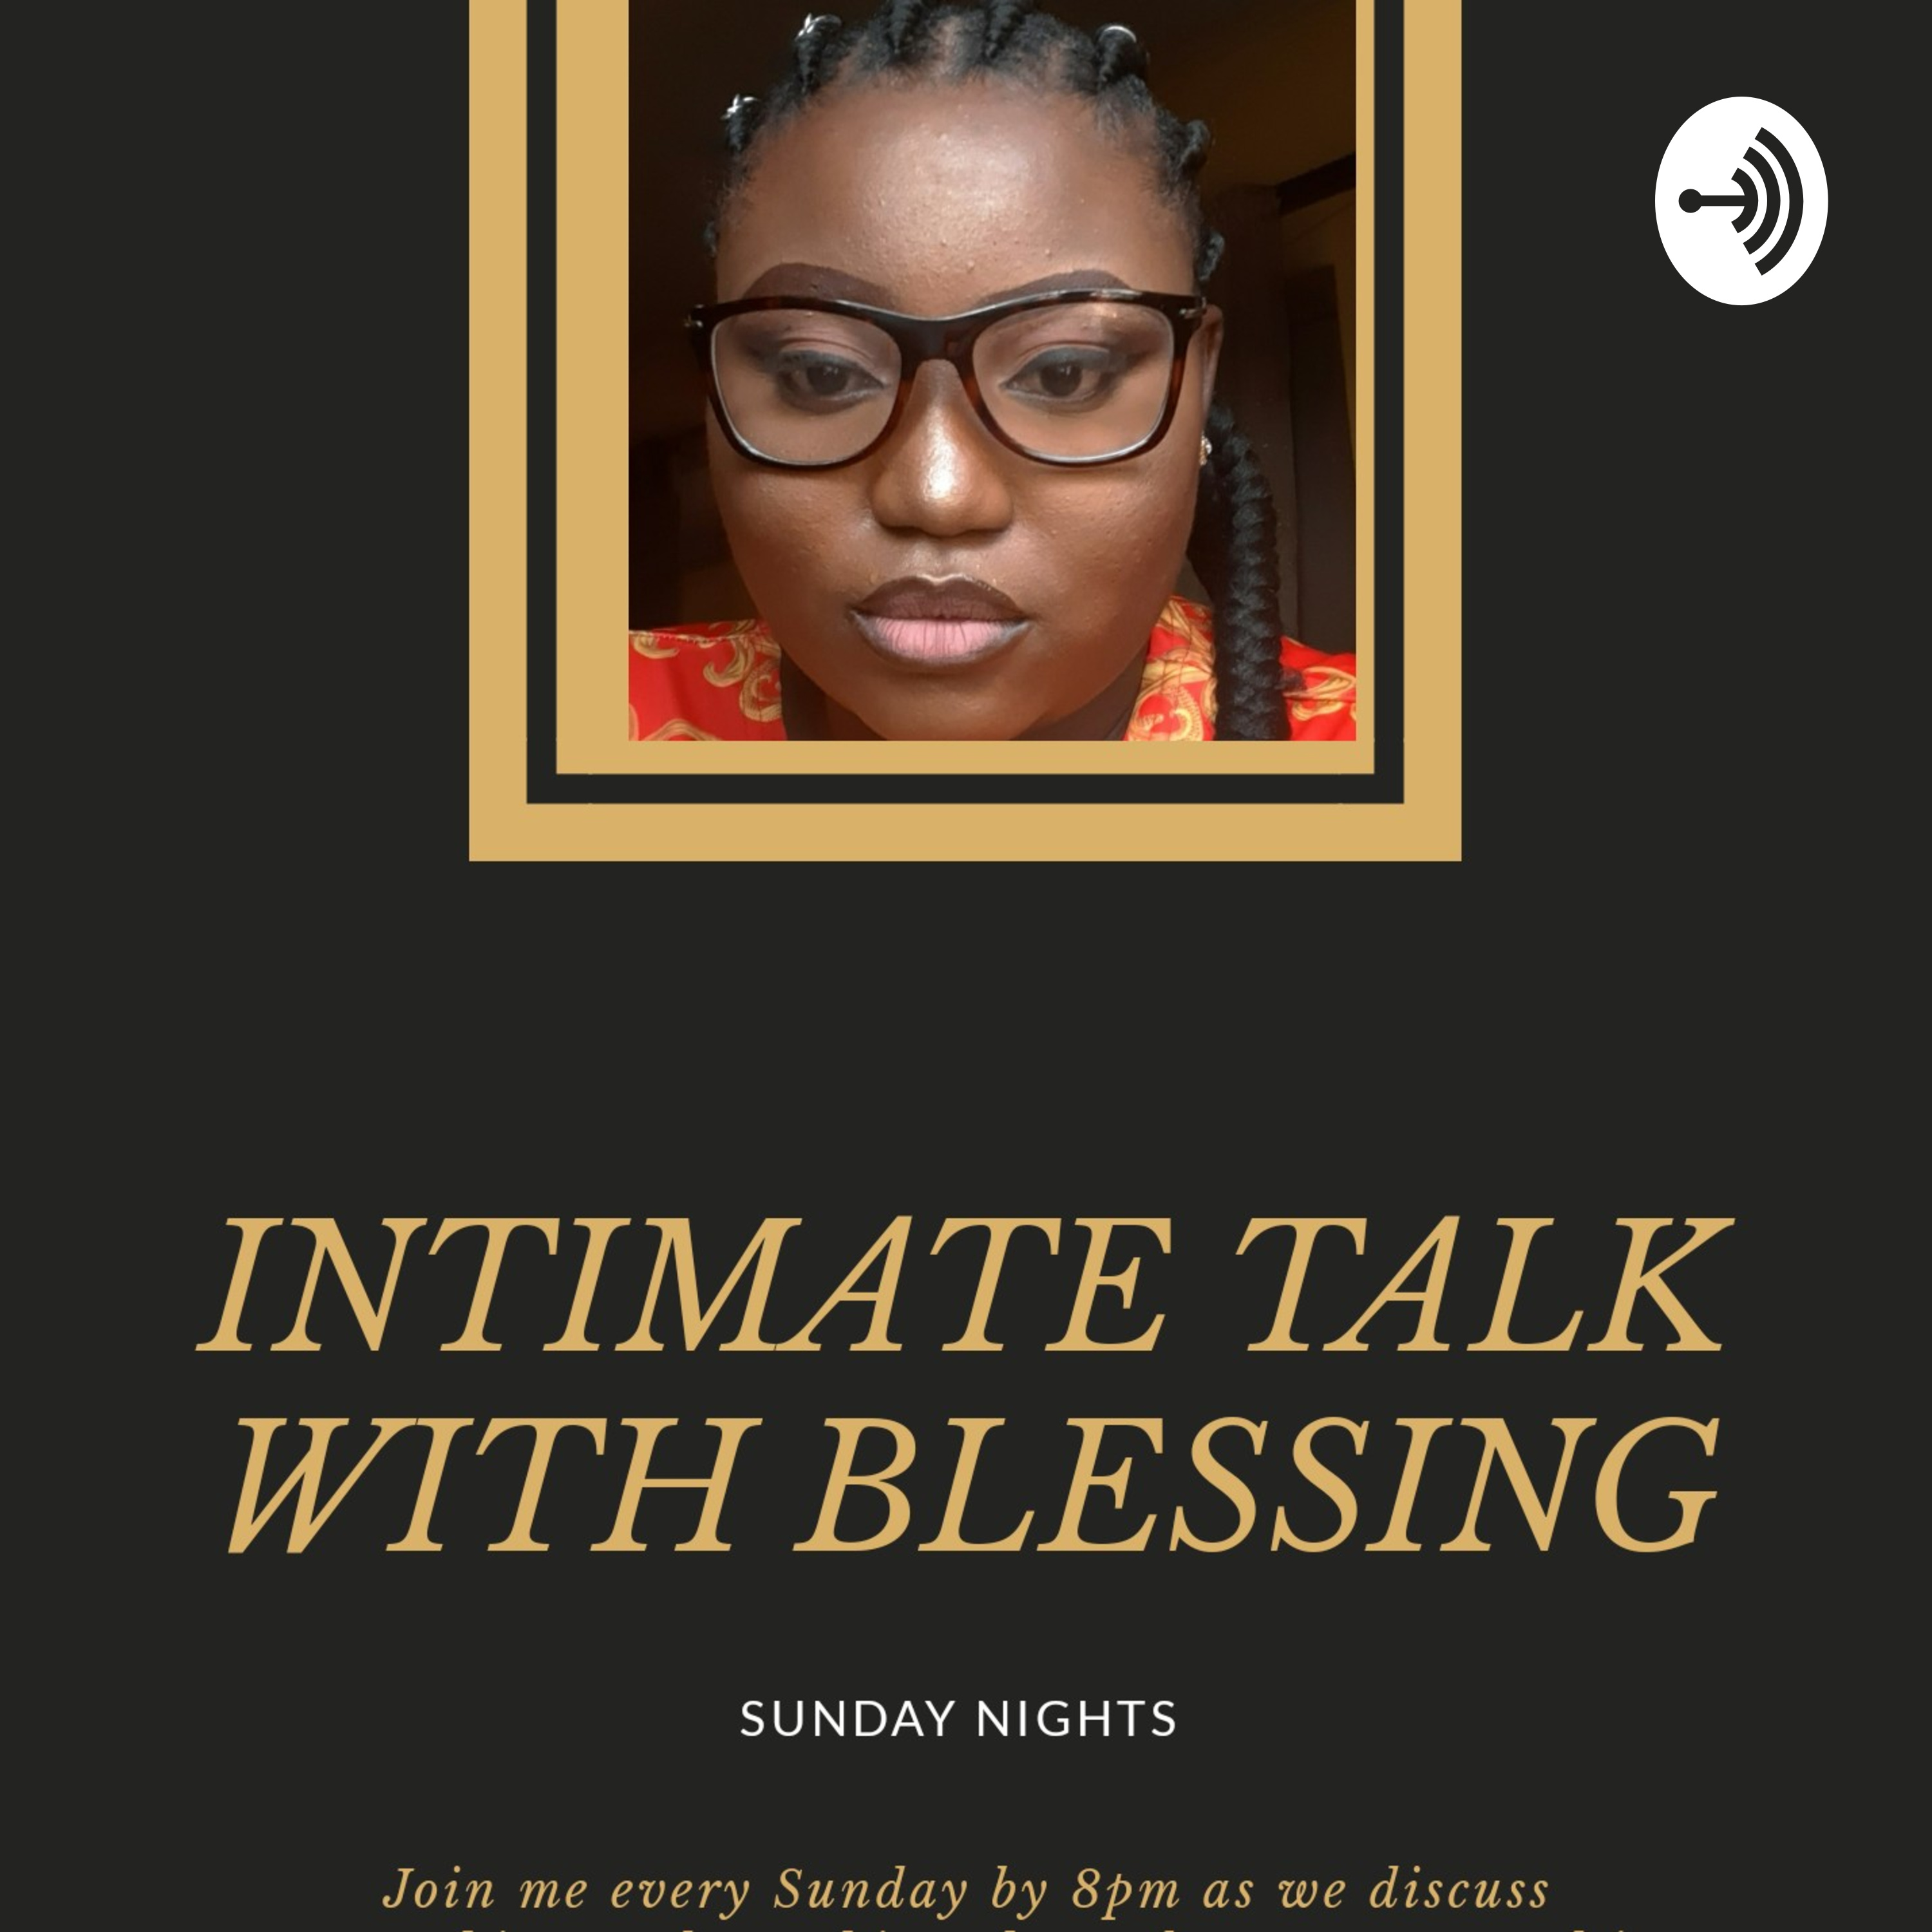 INTIMATE TALK WITH BLESSING (SUNDAY NIGHTS) podcast